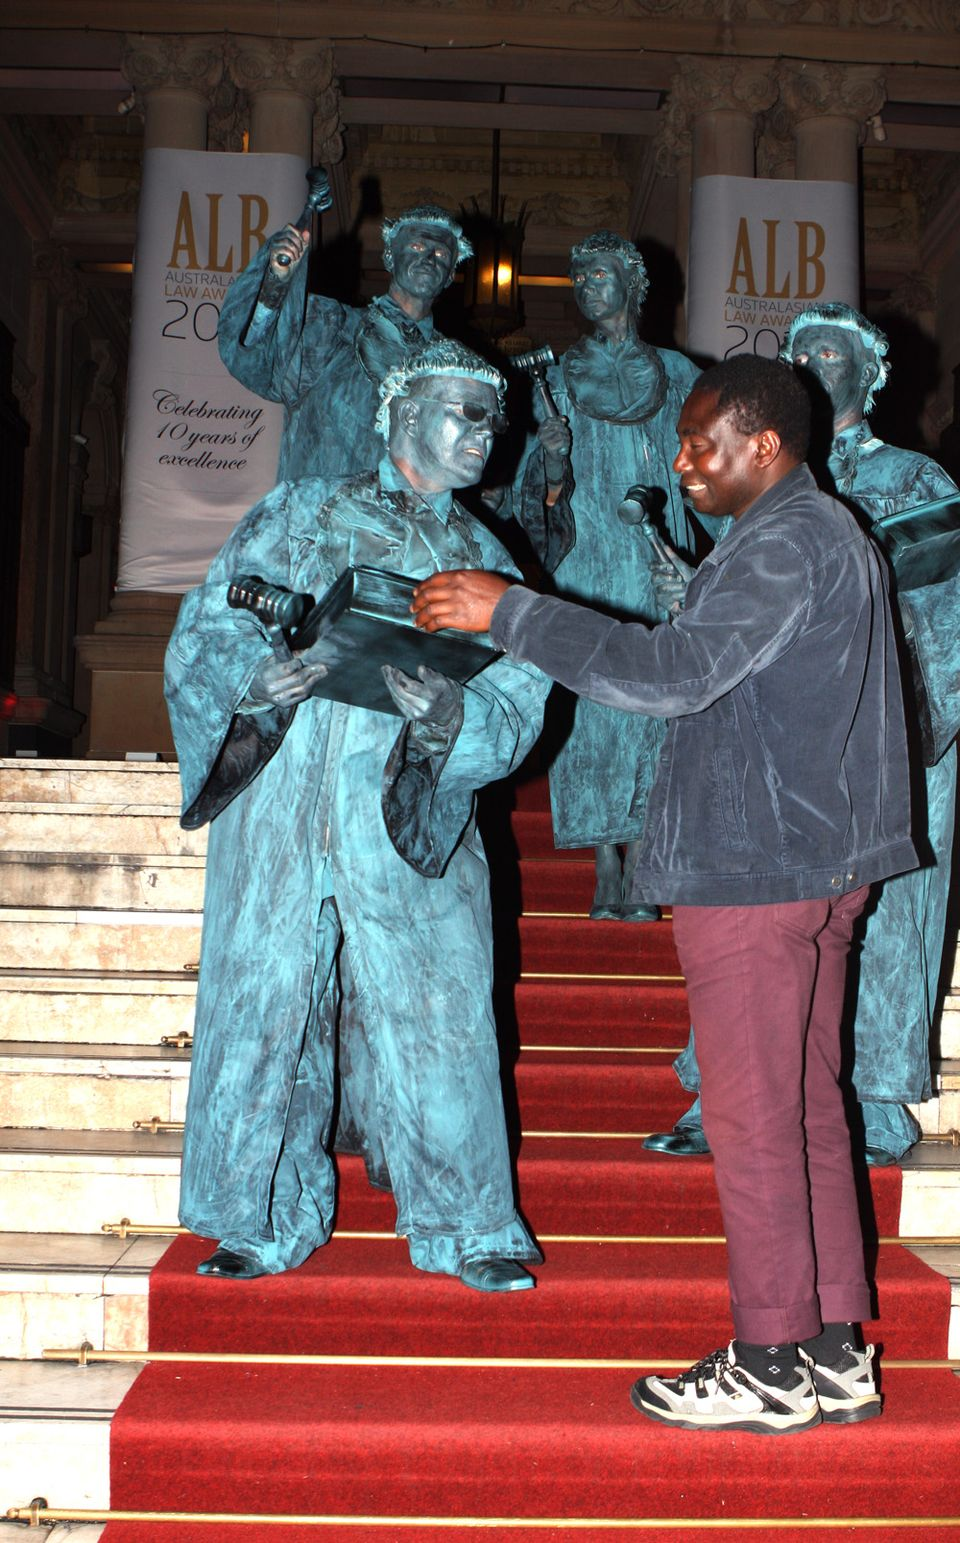 Human Statue Bodyart: Bodypainters and Living Statues in